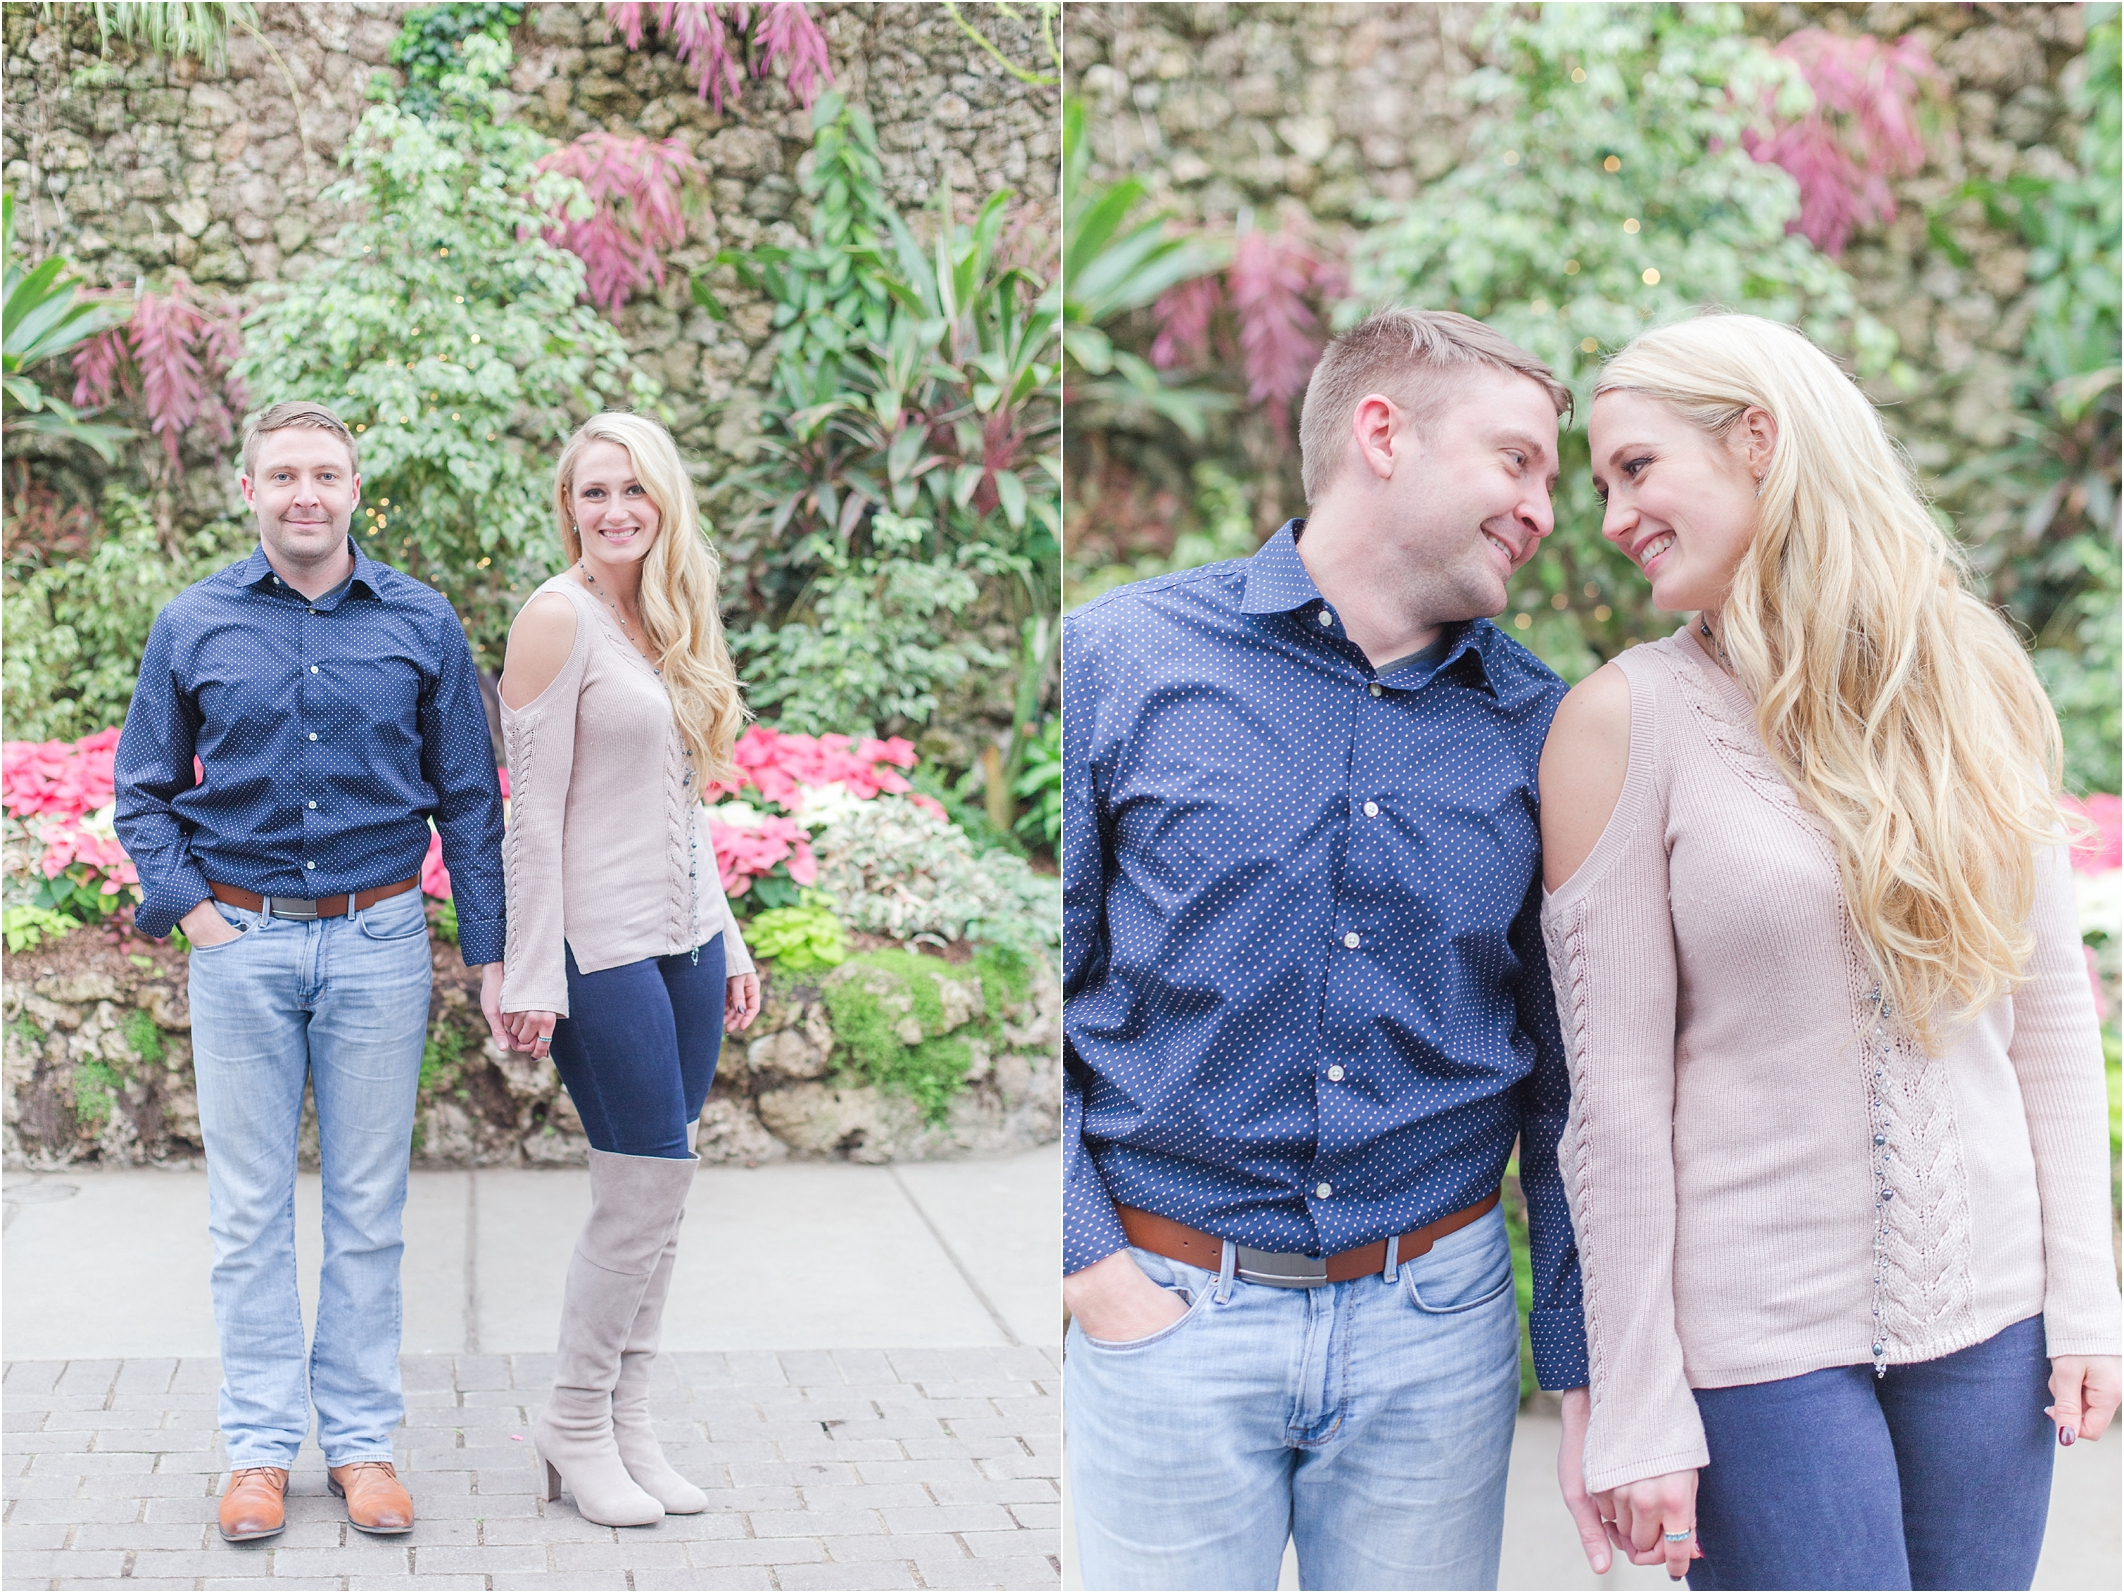 elegant-classic-belle-isle-conservatory-engagement-photos-in-detroit-mi-by-courtney-carolyn-photography_0031.jpg